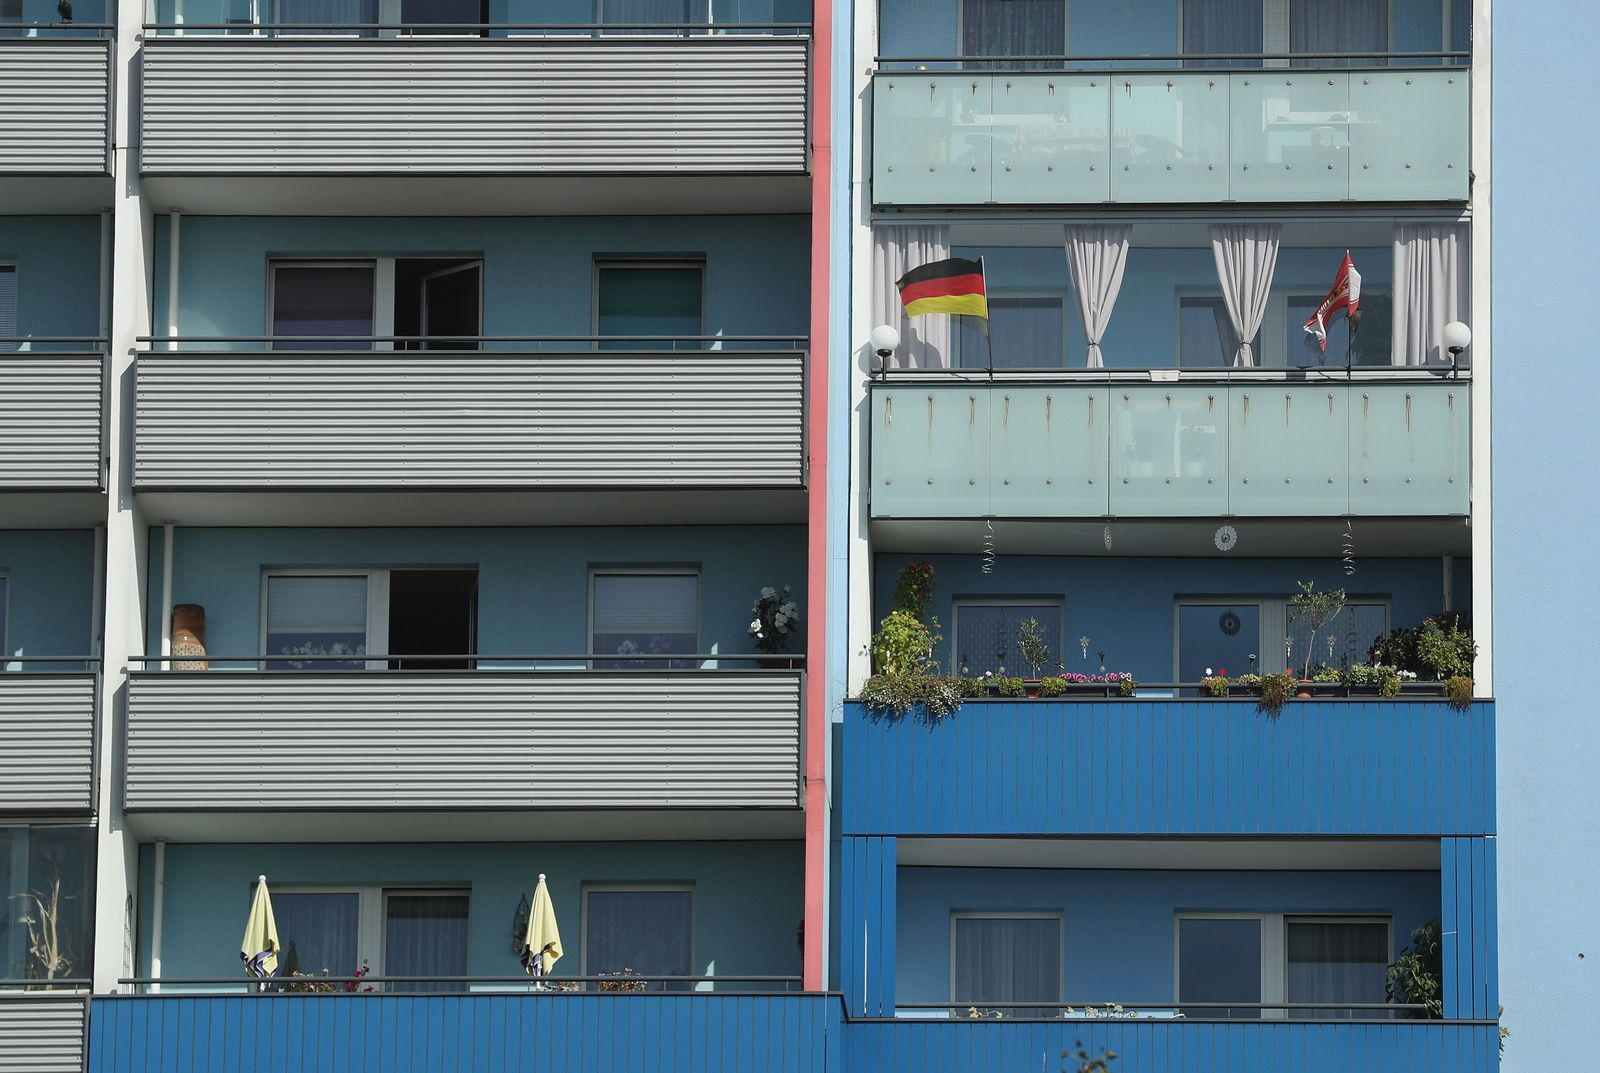 German flag hangs from a balcony